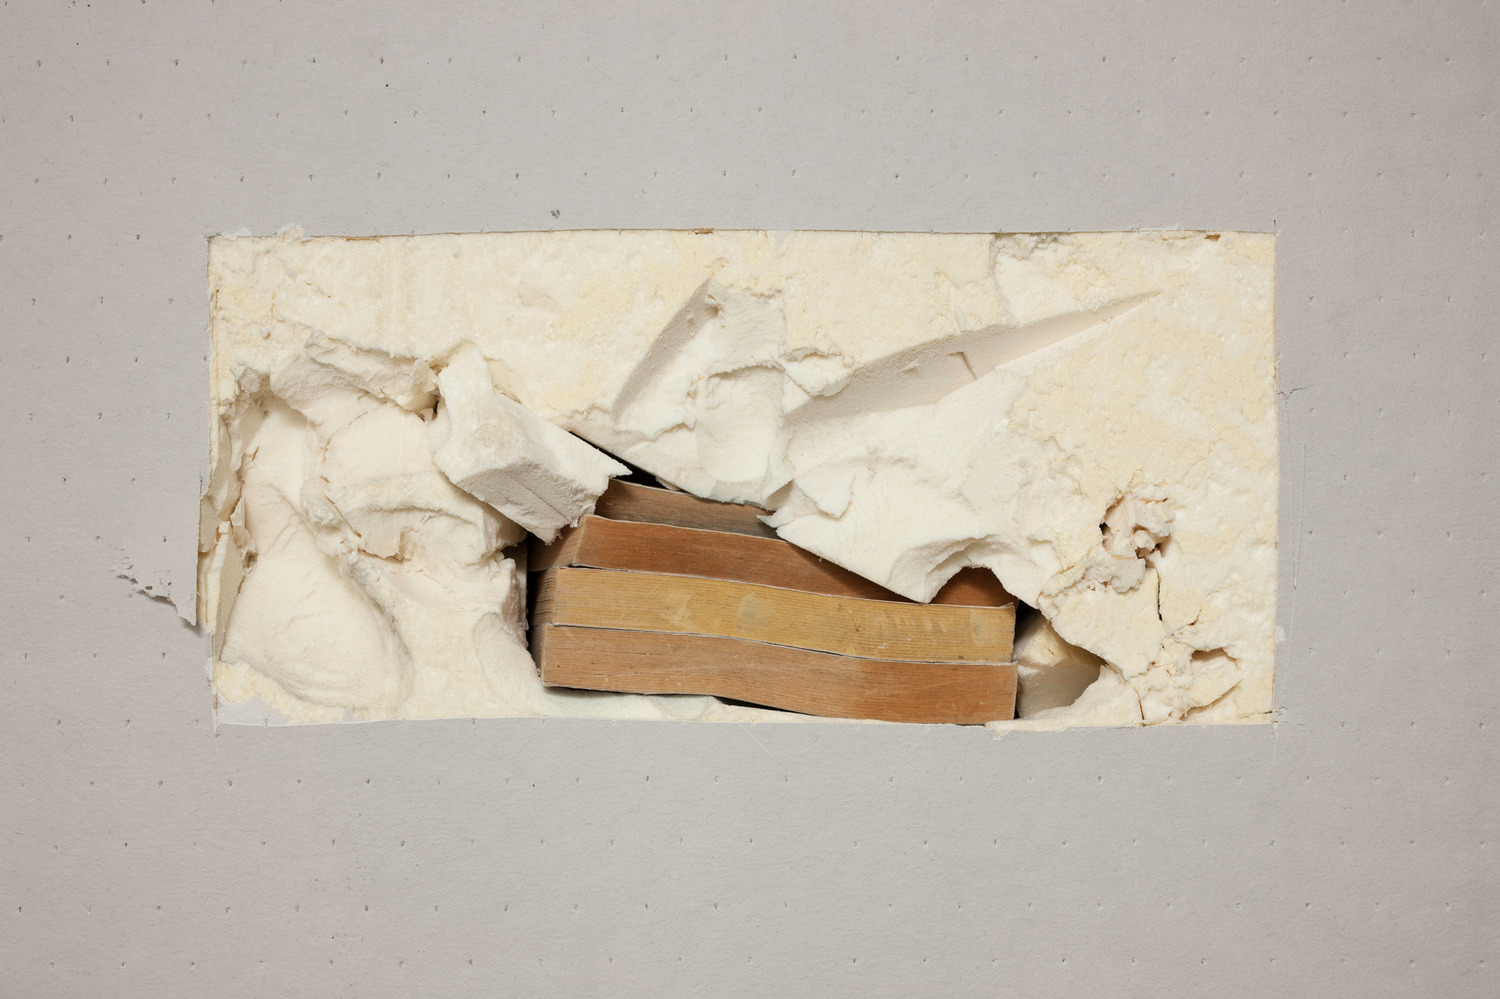 Untitled (Data Idea), 2014, Polyurethane foam, books, 240 x 240 cm; Installed dimensions variable